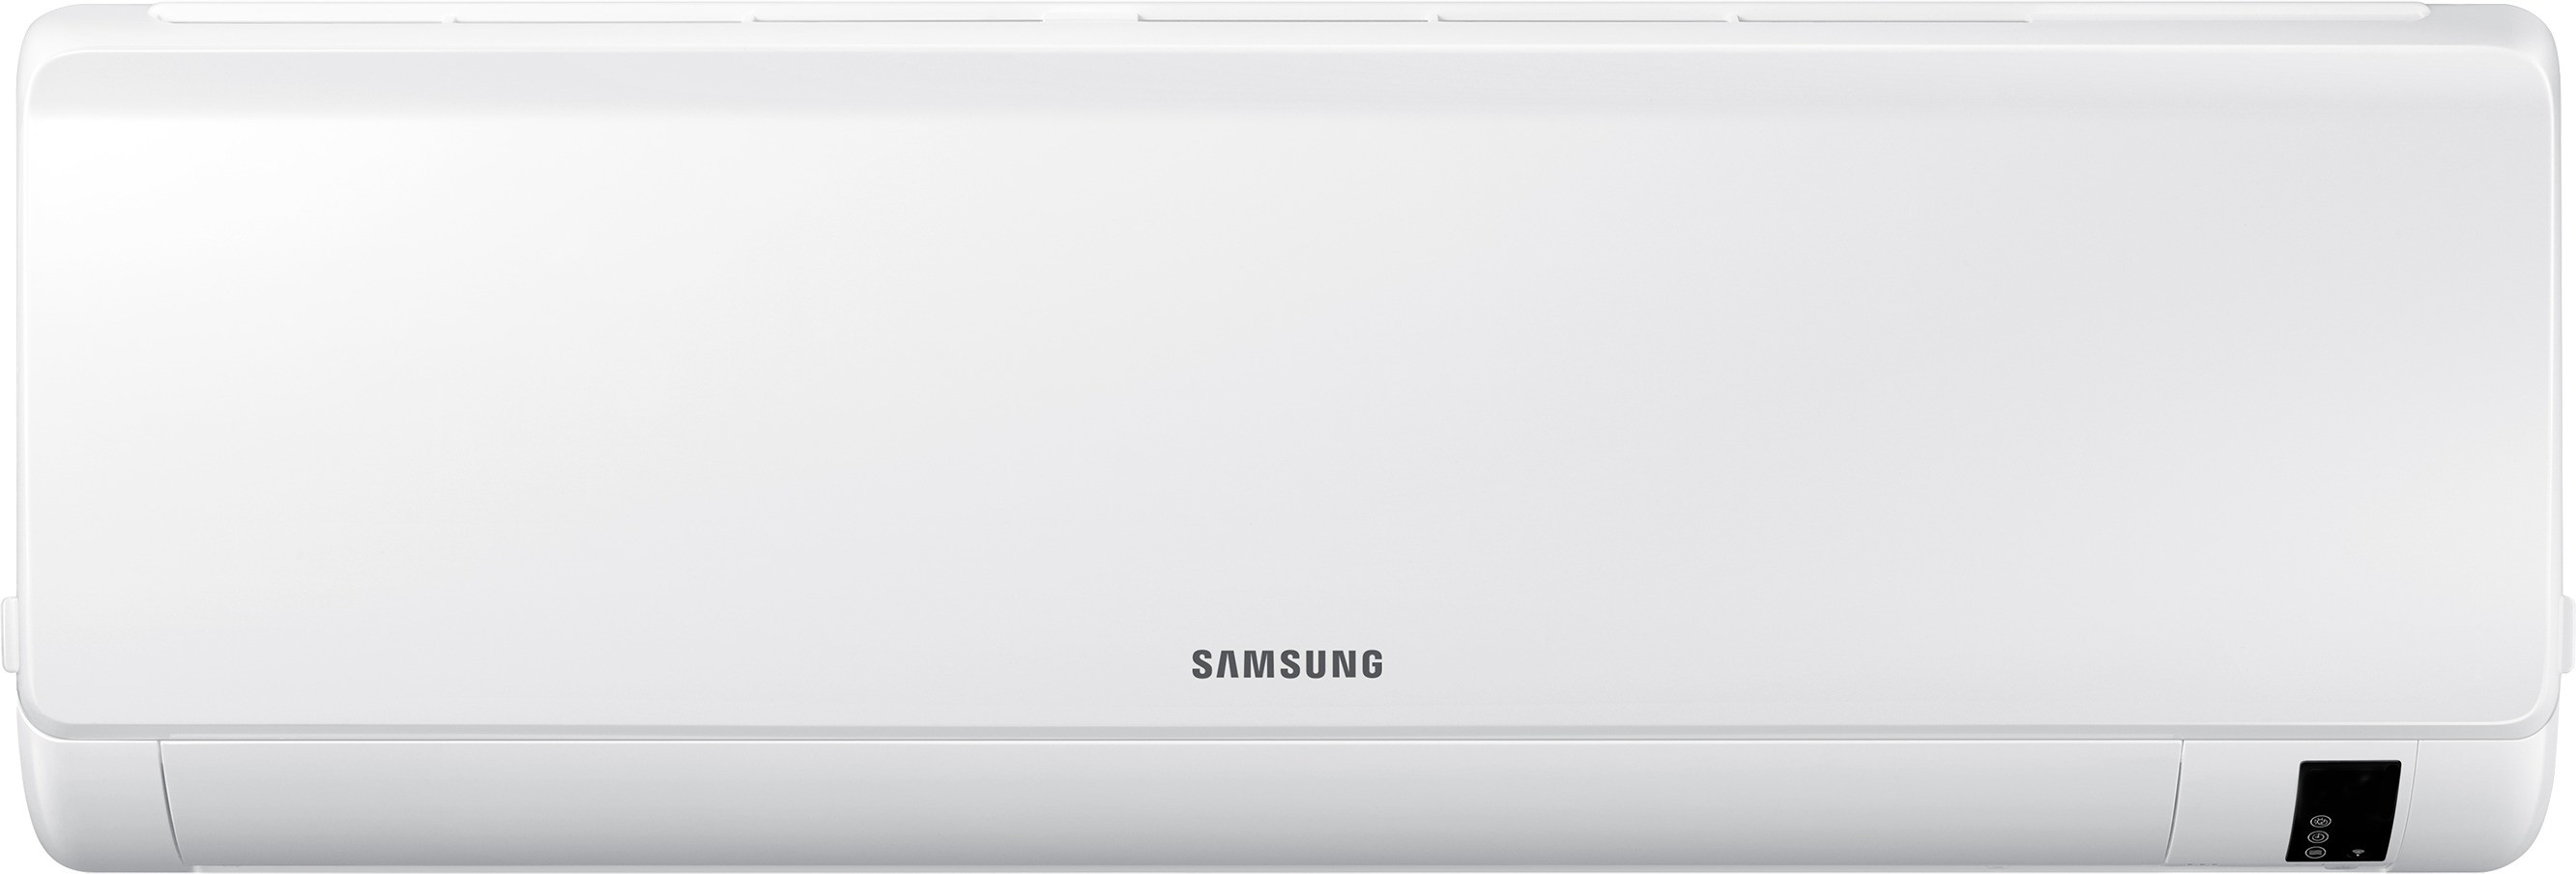 SAMSUNG 1 Ton 3 Star Split AC - Plain(AR12MC3HBWK)